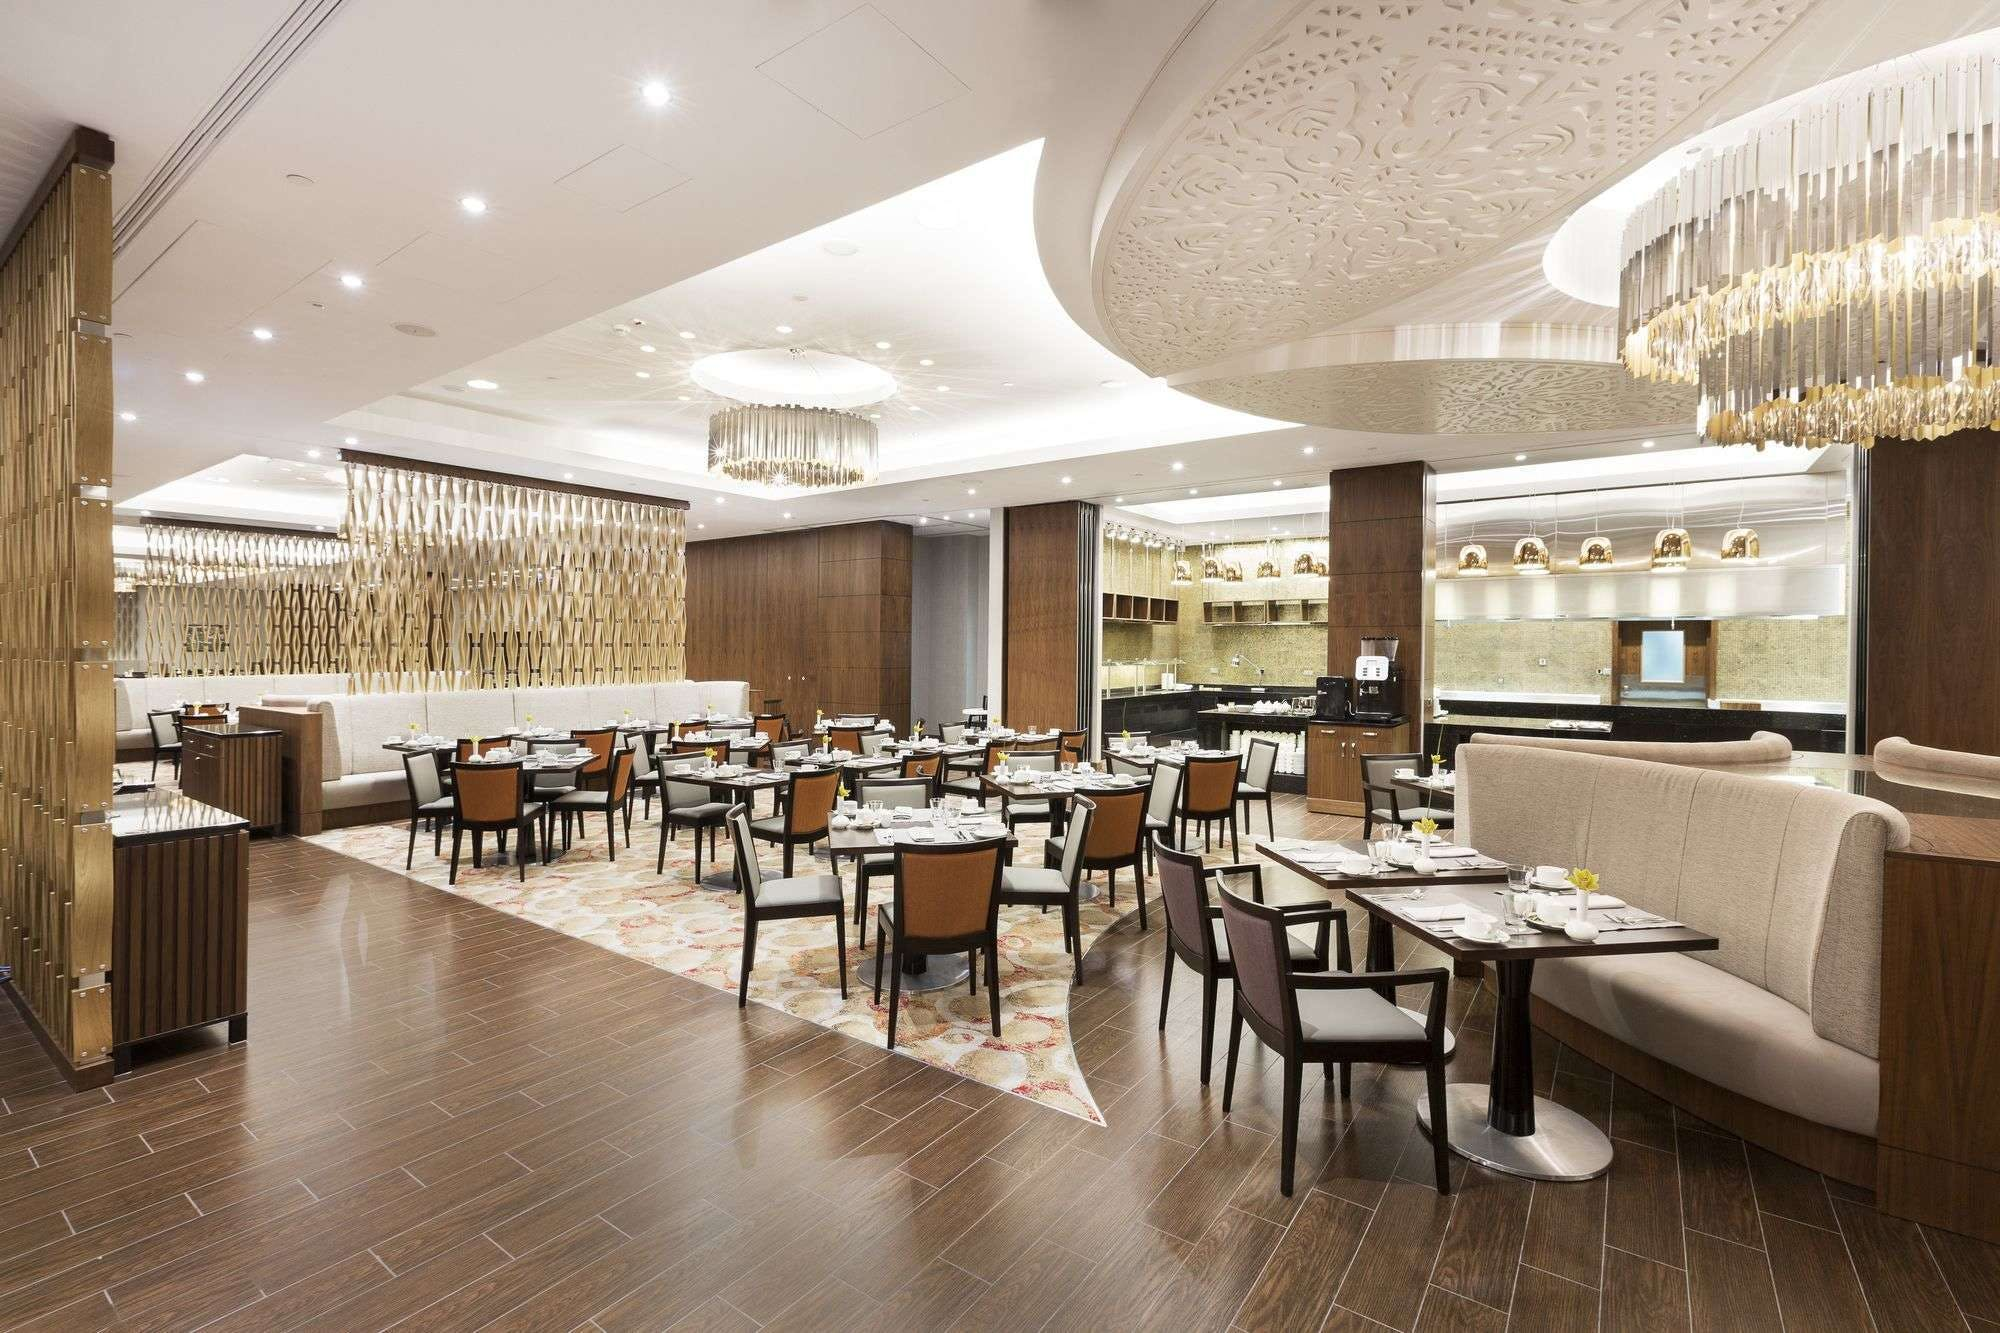 DoubleTree By Hilton Hotel & Conference Centre Warsaw